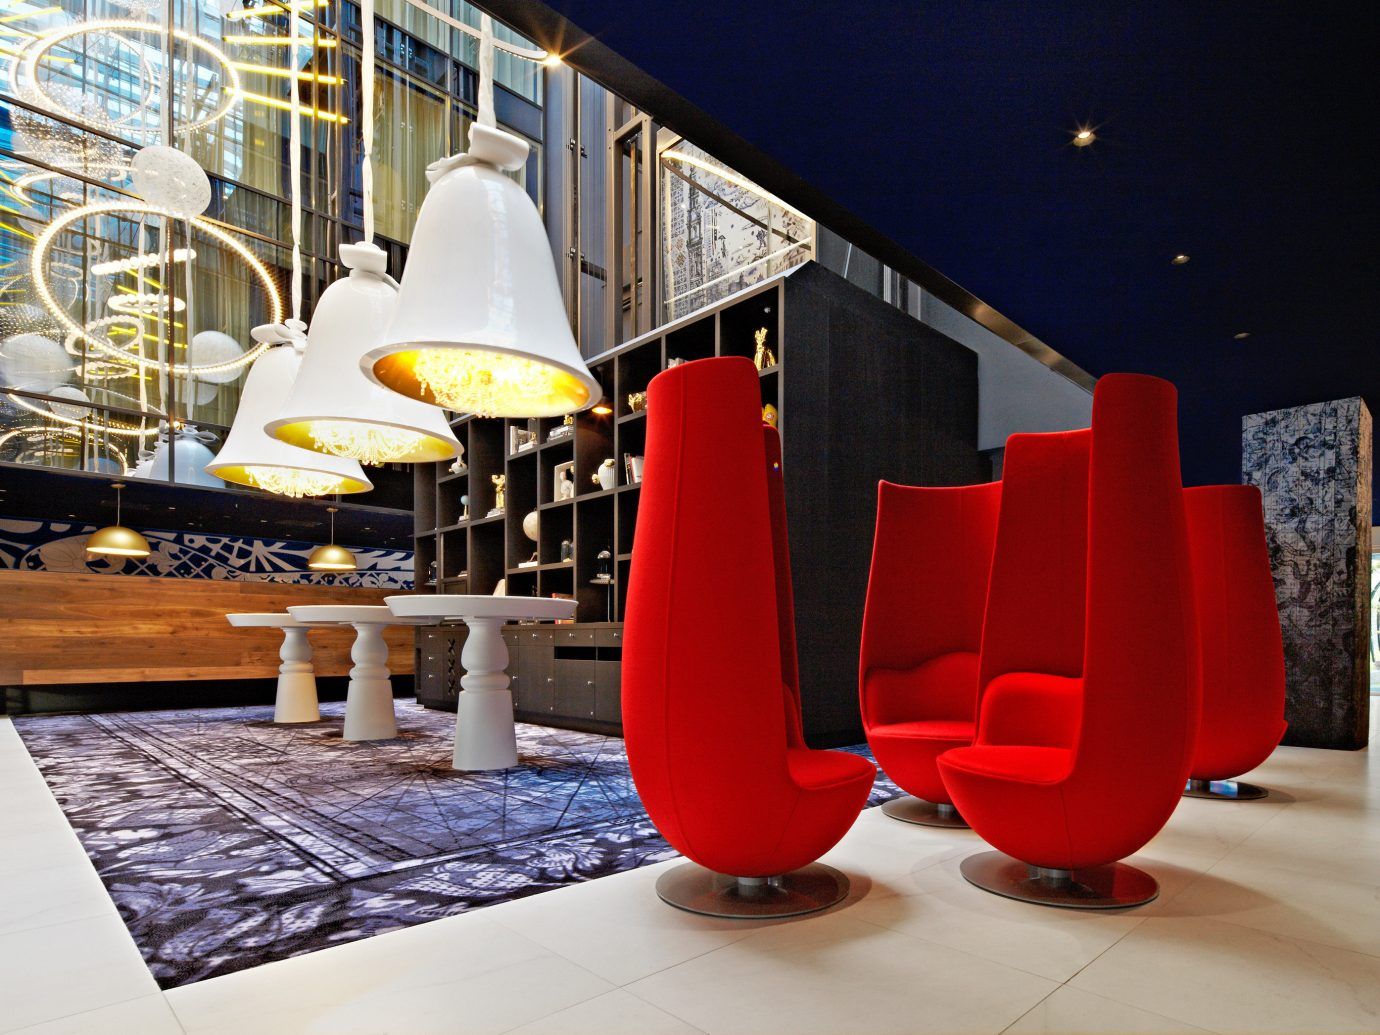 Amsterdam Boutique Hotels Hotels The Netherlands color interior design red vehicle Design exhibition tourist attraction furniture chair orange